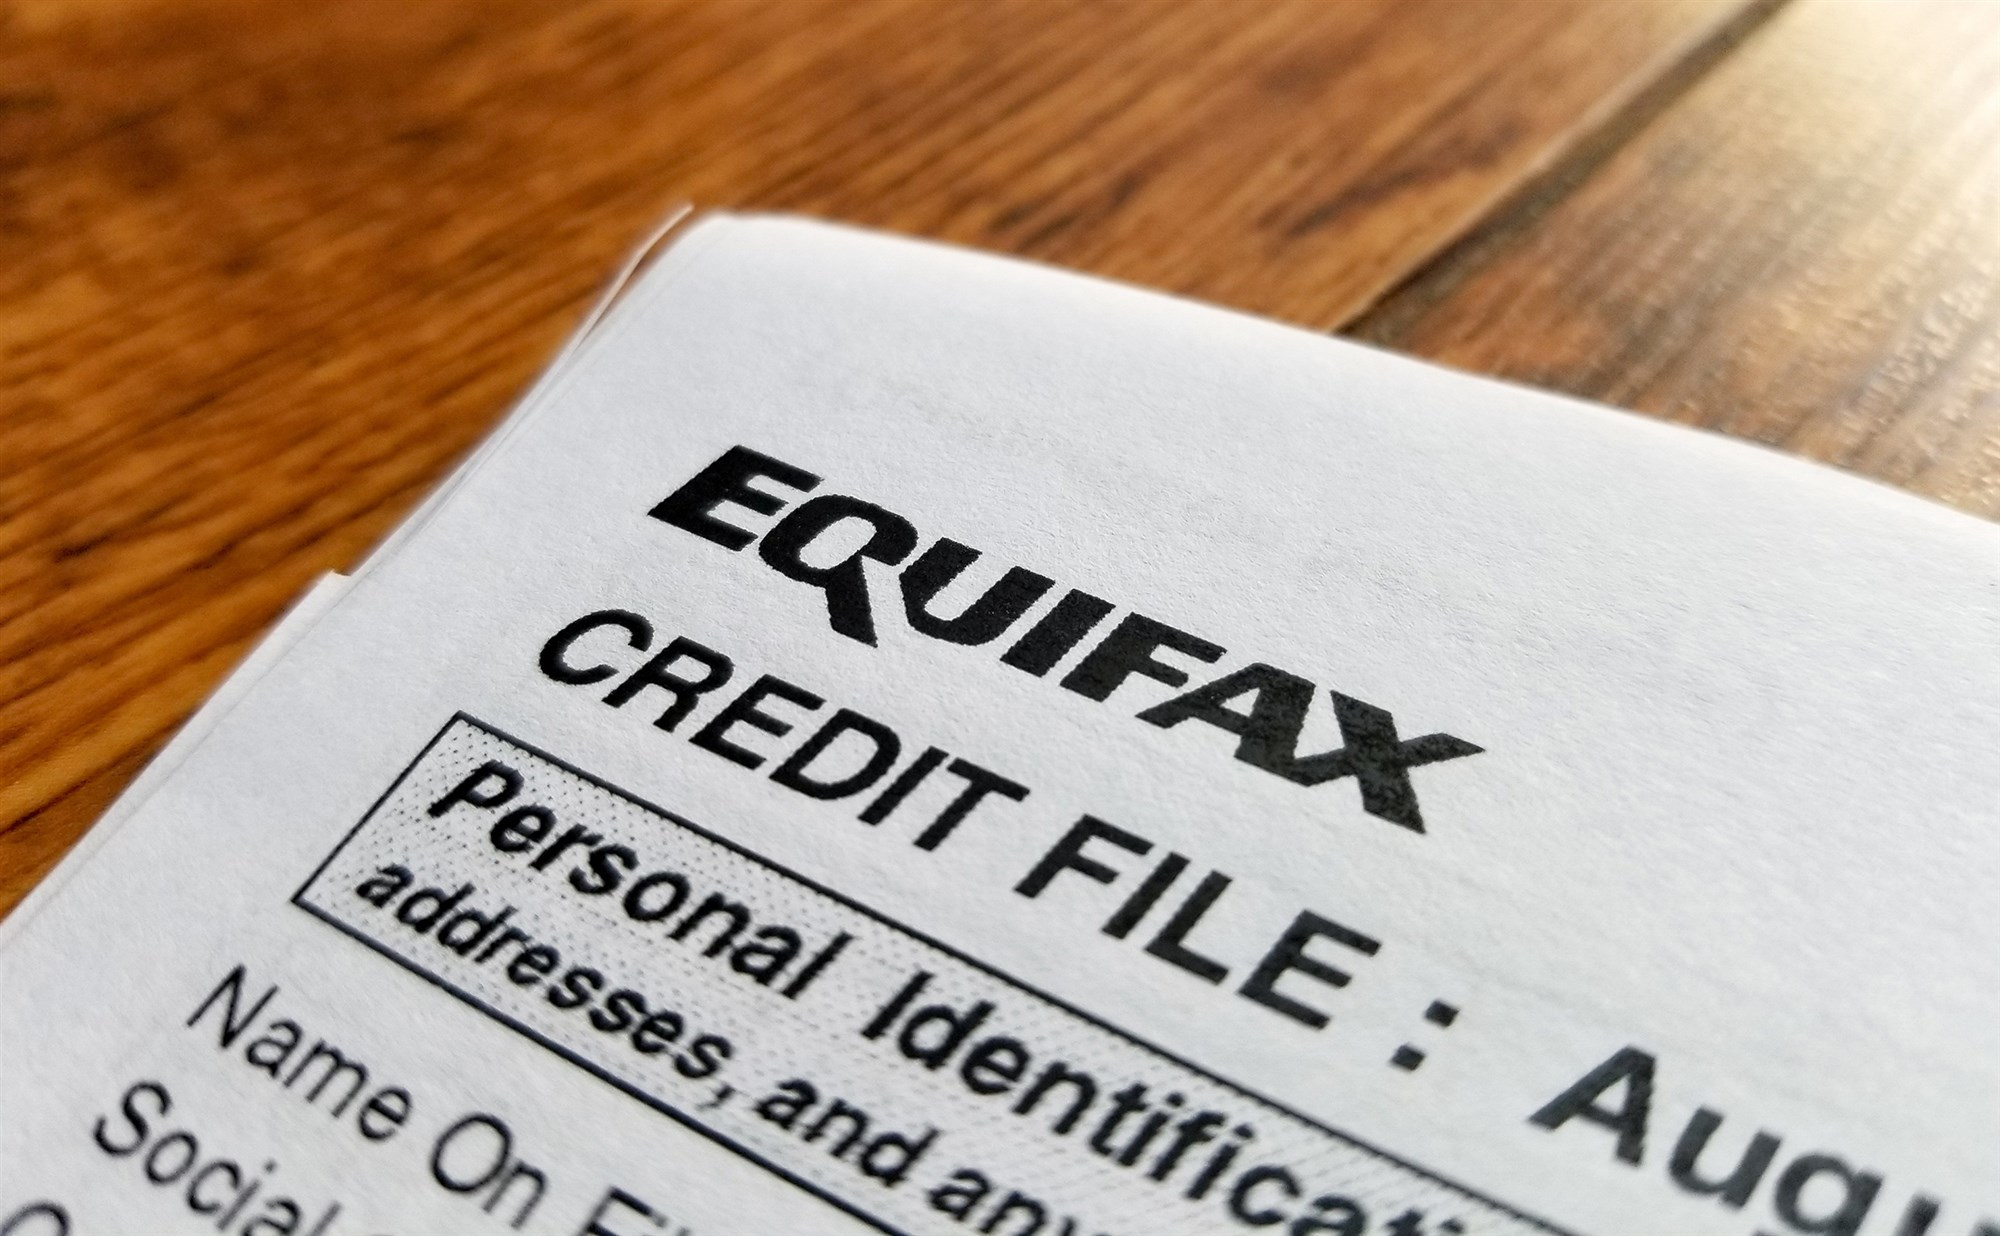 Worried about data breaches? Now you can freeze your credit for free